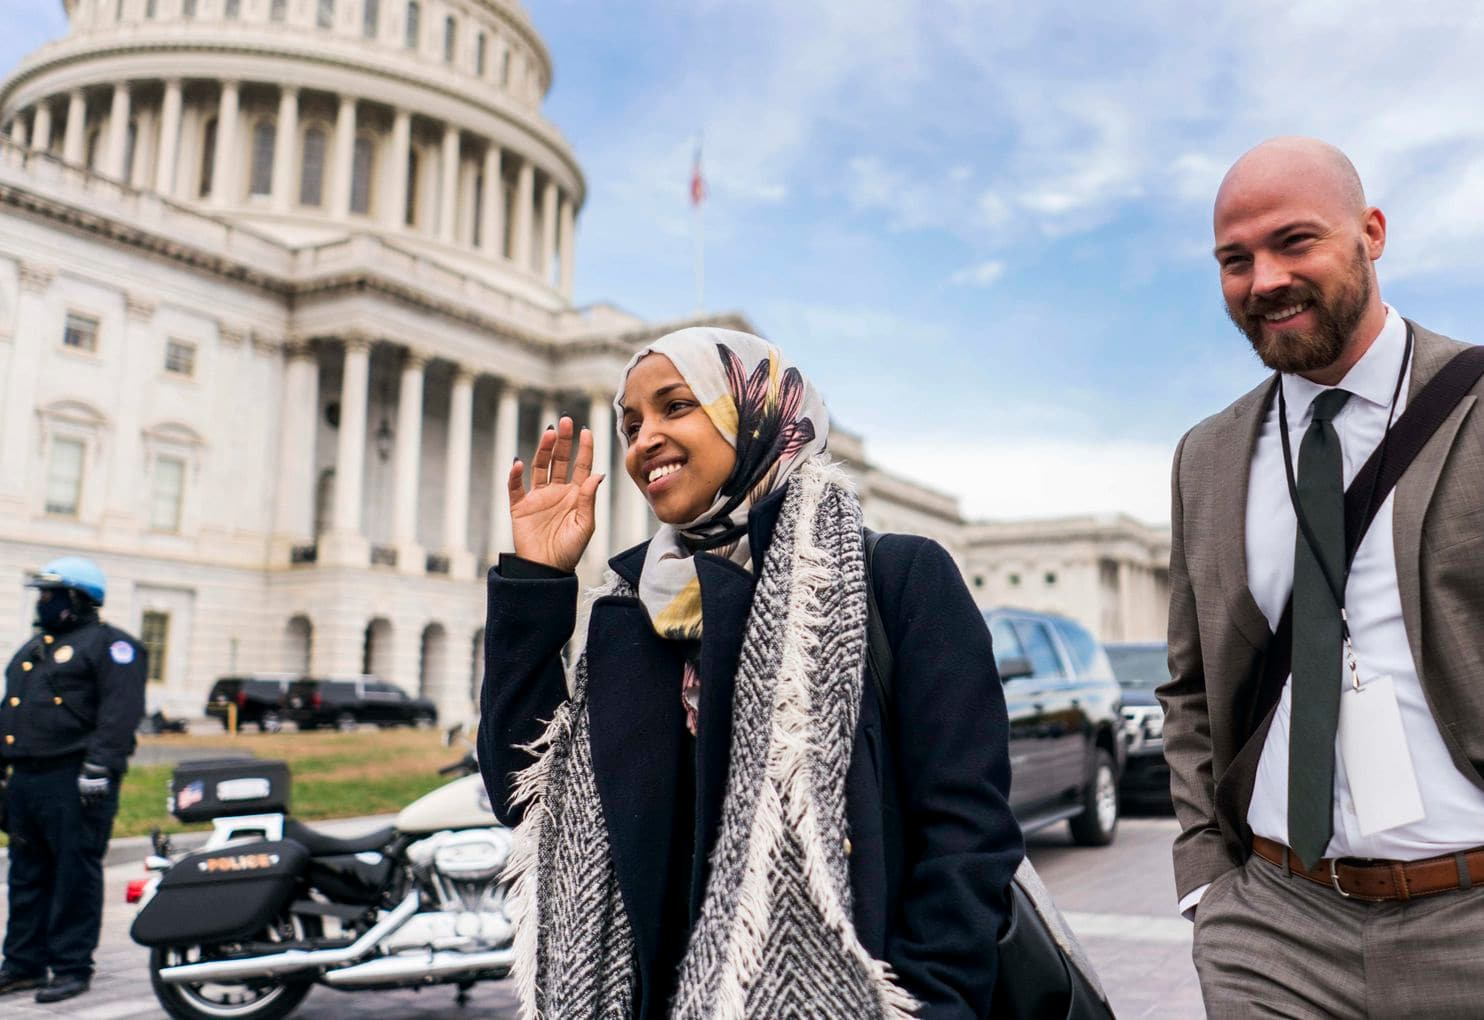 'Just deal,' Muslim lawmaker Ilhan Omar says to the pastor who complained about hijabs on House floor